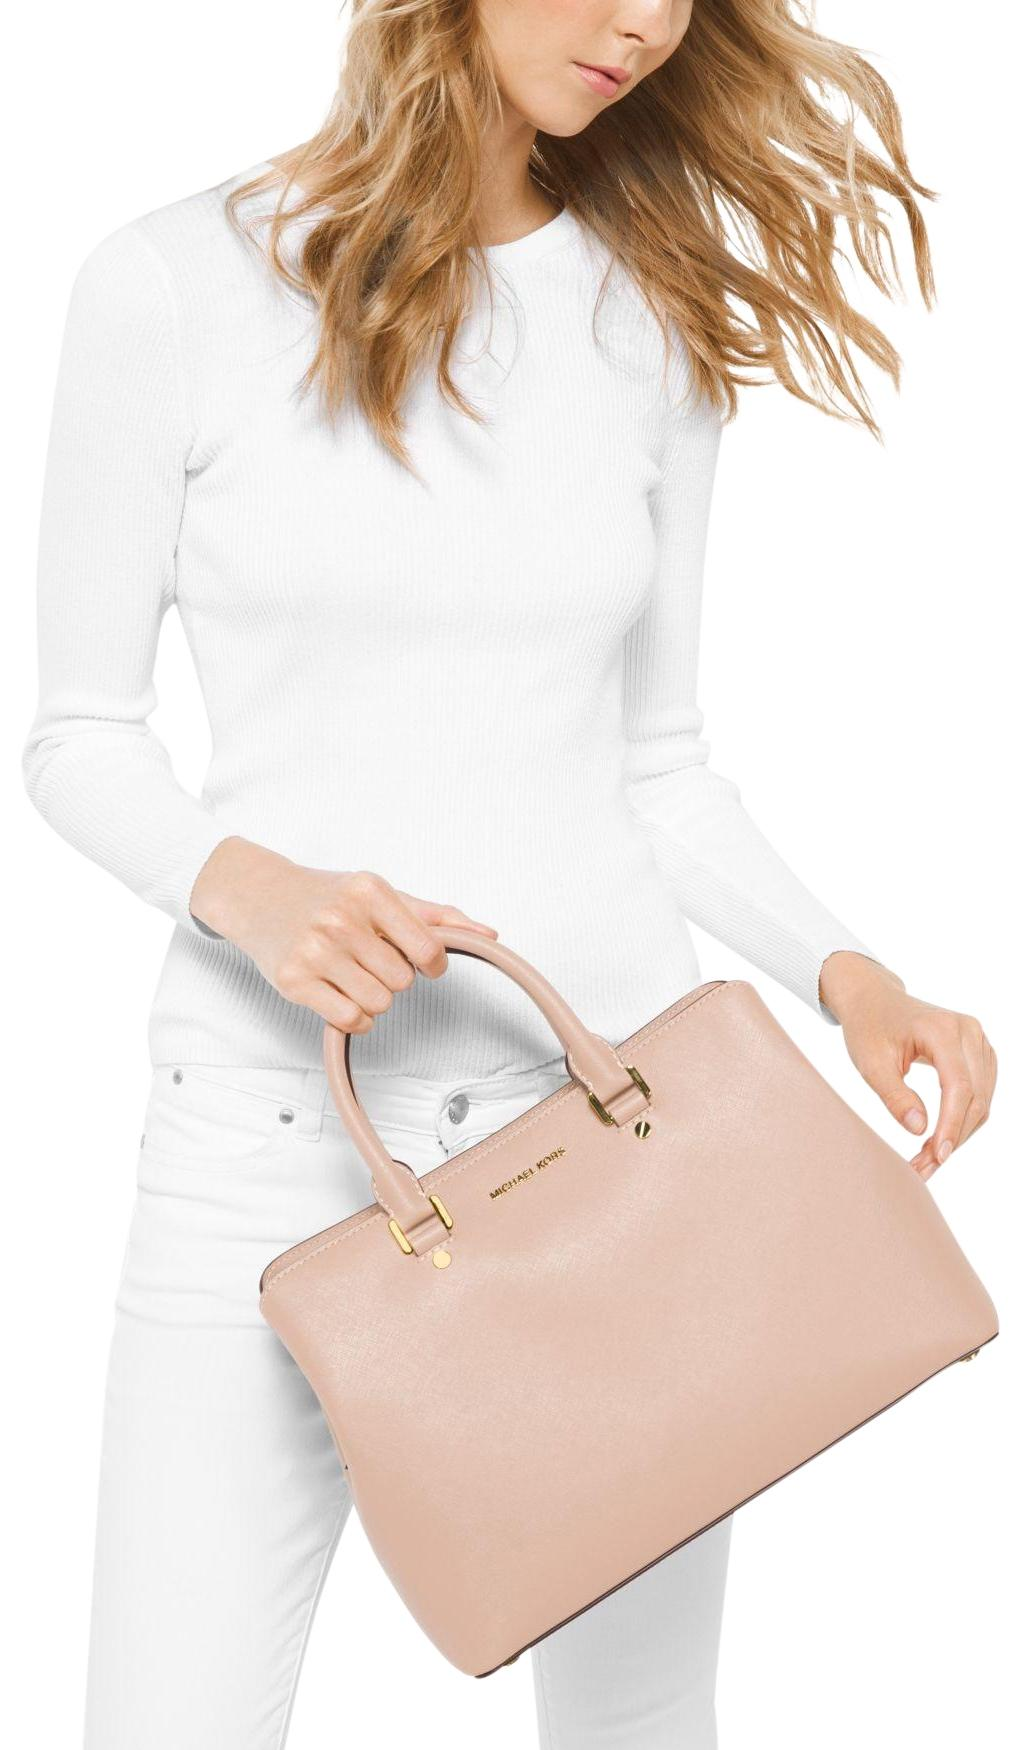 9ba988702638 ... handbag satchel shoulder 8b2d7 2d18e  cheap michael kors leather  satchel in soft pink e665d ec853